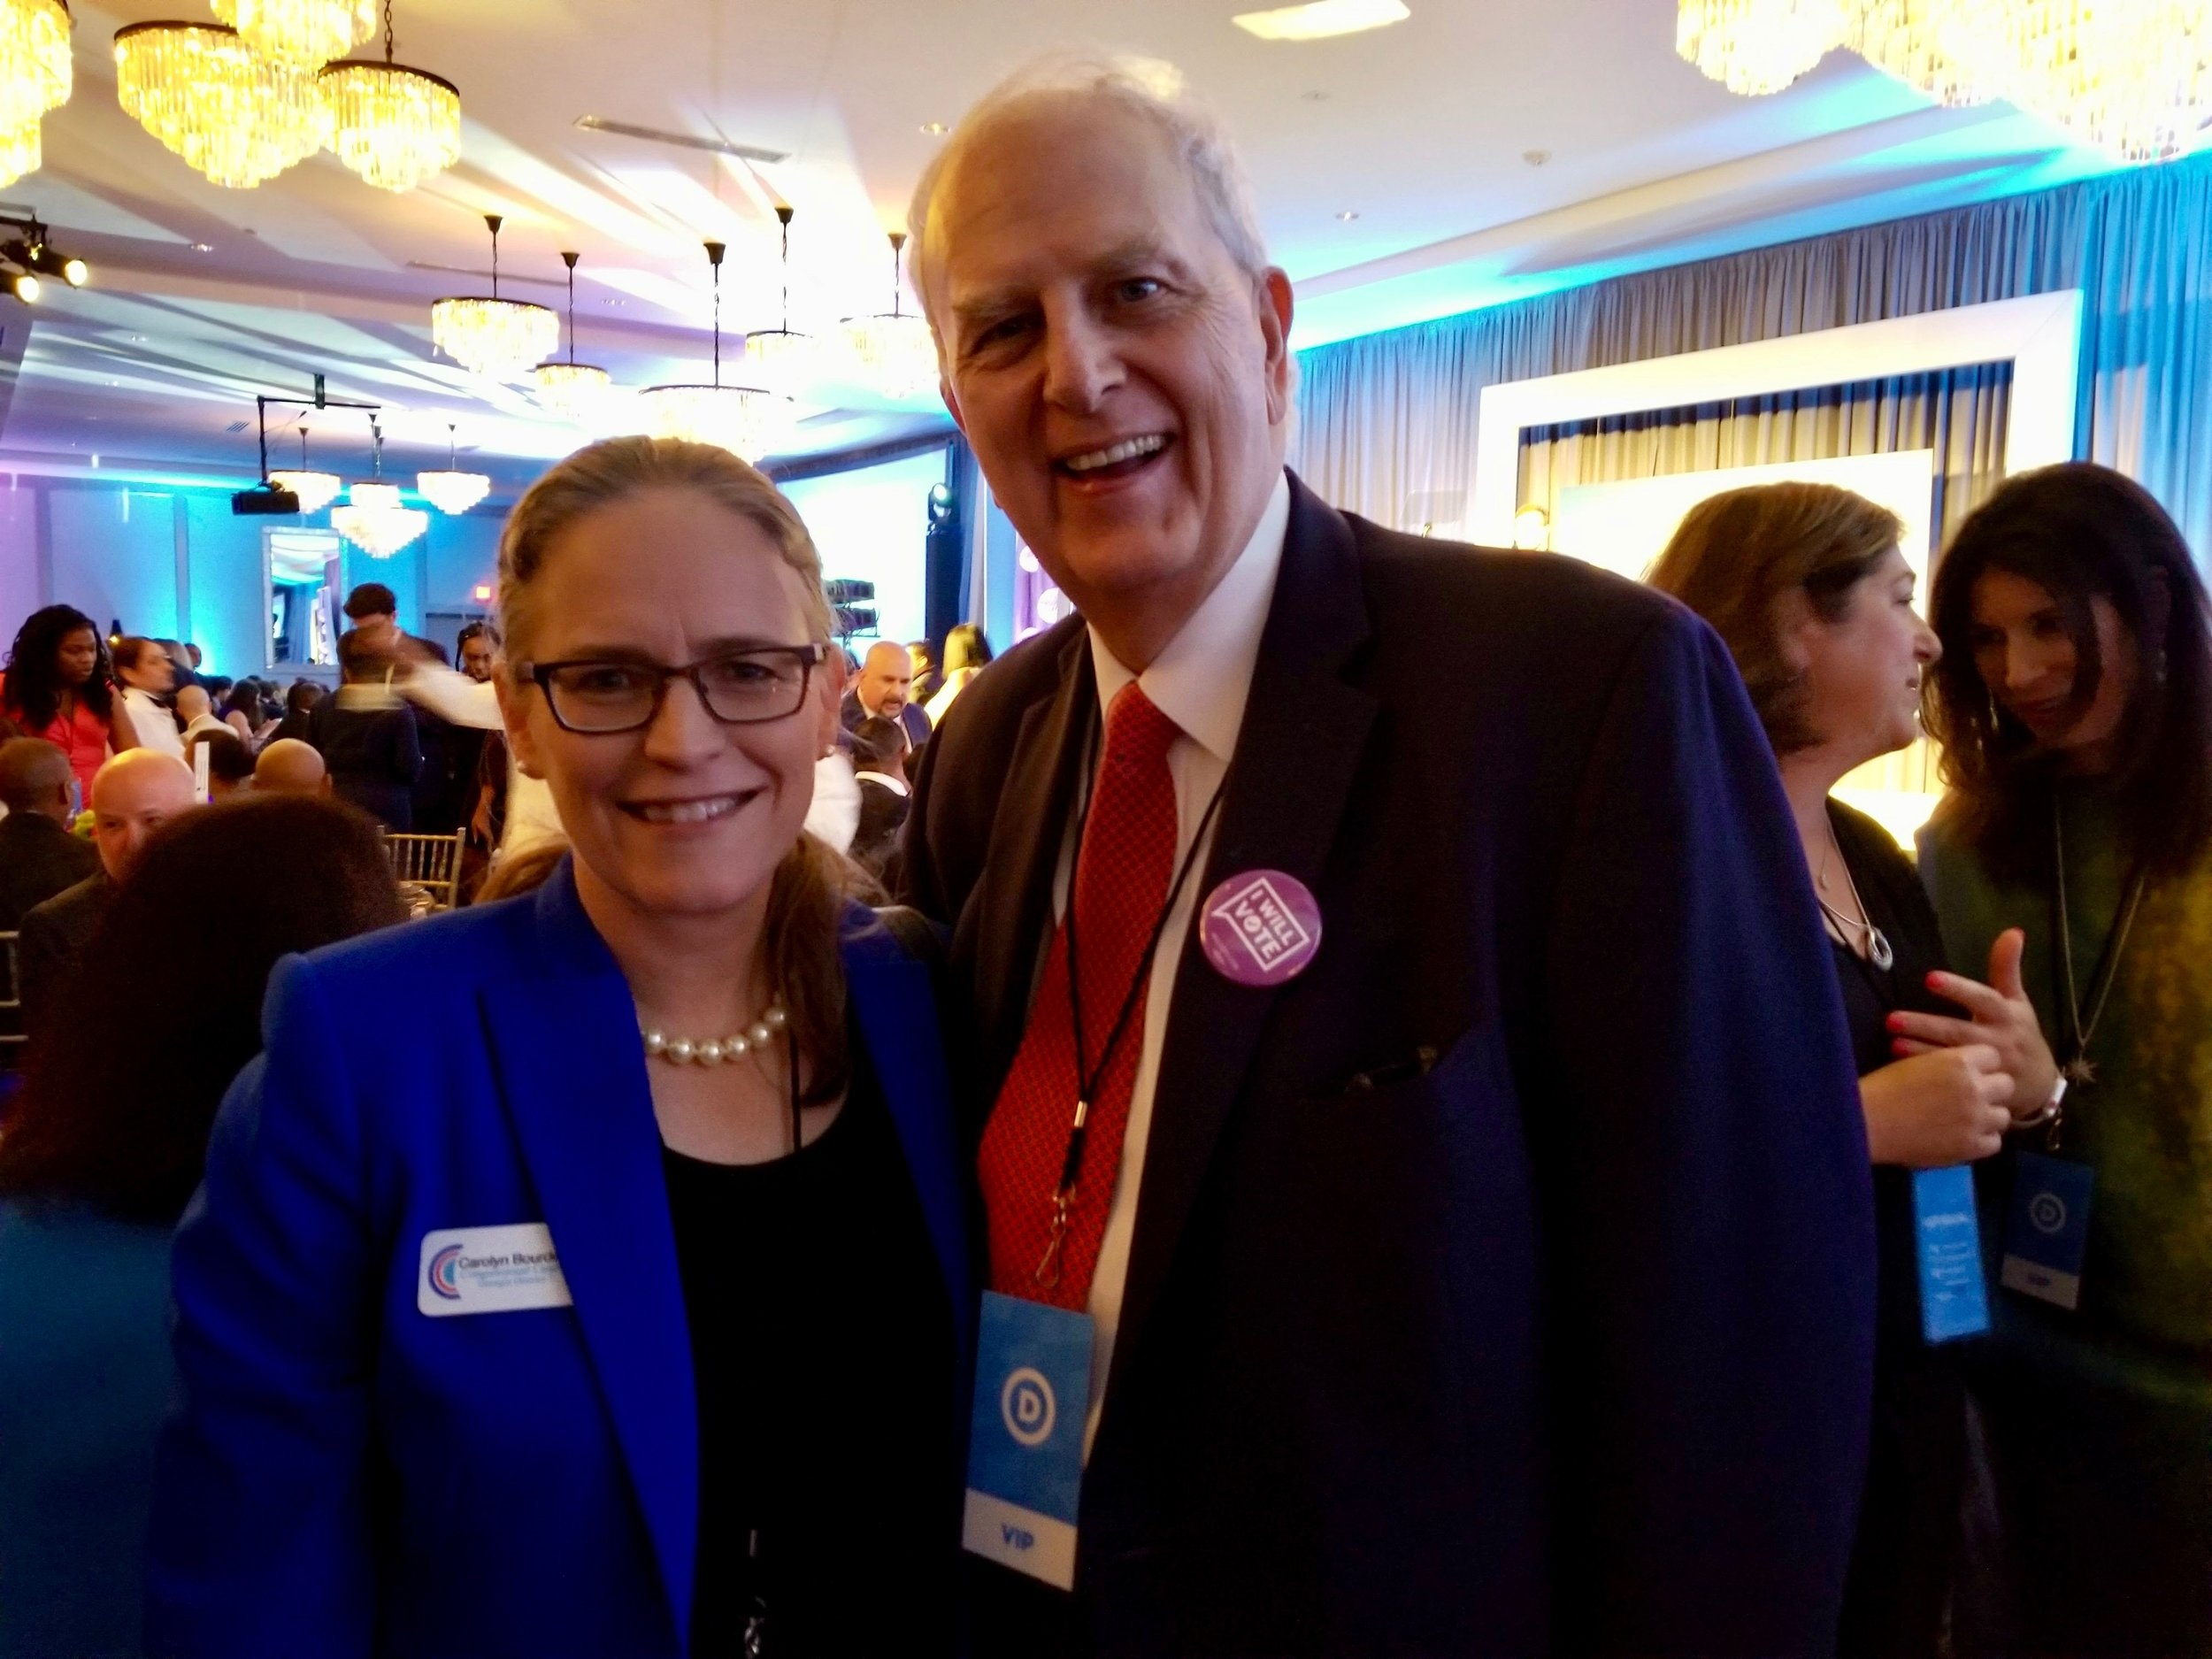 """- """"Carolyn Bourdeaux has the courage, background and skills necessary to get things done in Congress for all Georgia families. She knows it's time we put our partisanship aside and come together to work for the people. I'm proud to endorse her, and I ask all residents of the 7th district to support Carolyn as well.""""Roy Barnes80th Governor of Georgia"""